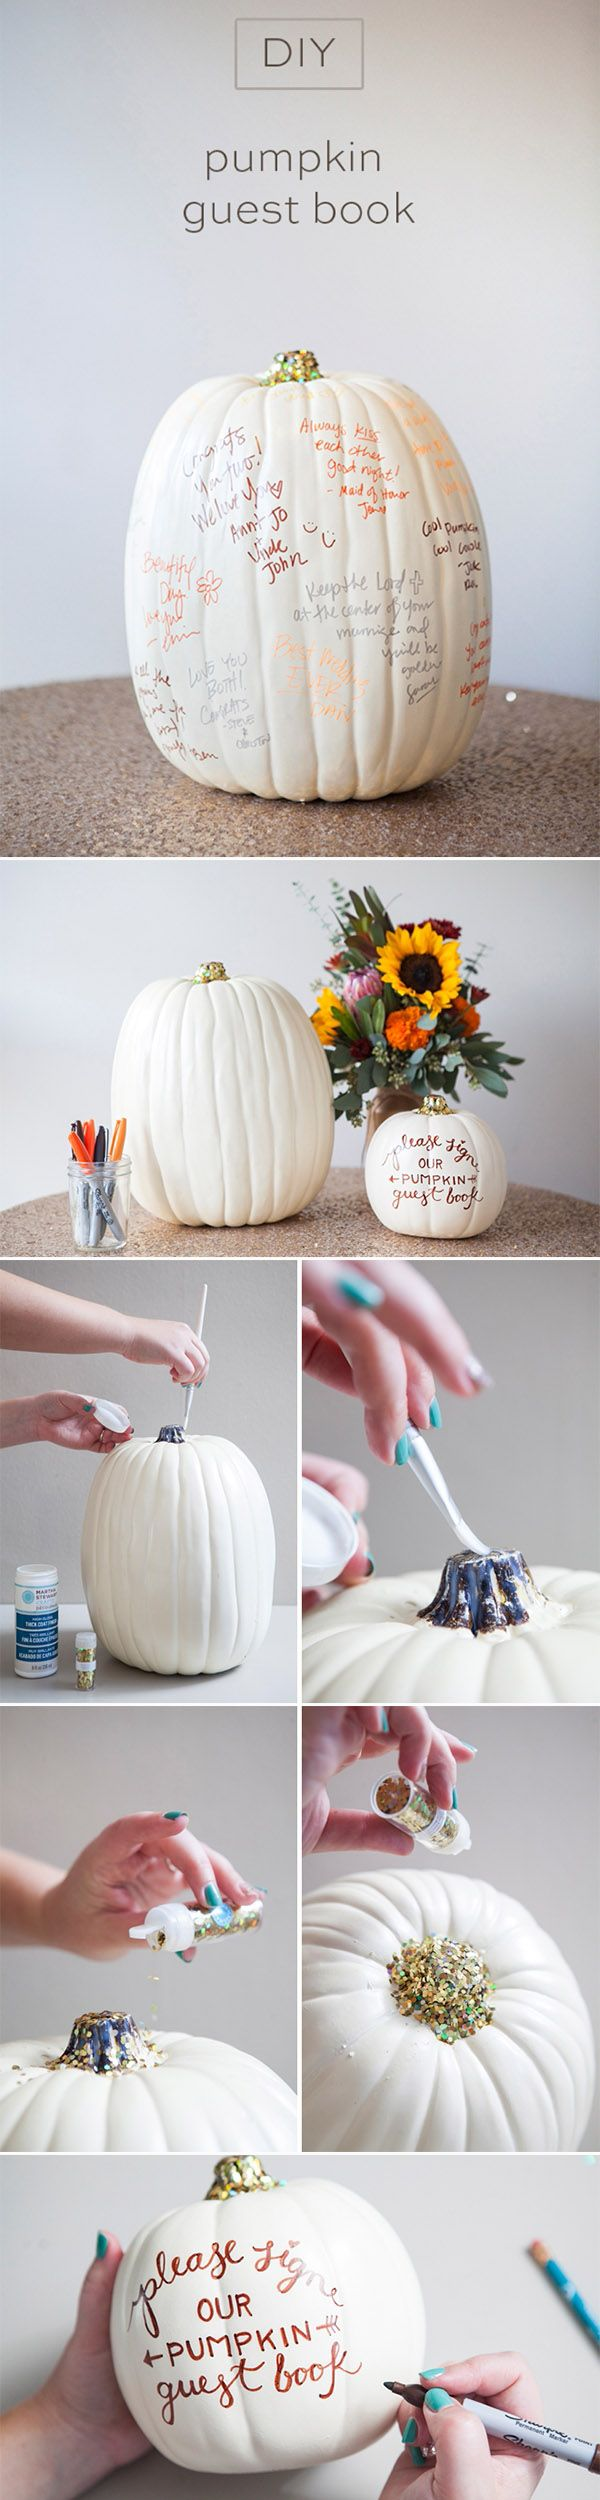 diy pumpkin wedding guest book for fall wedding ideas